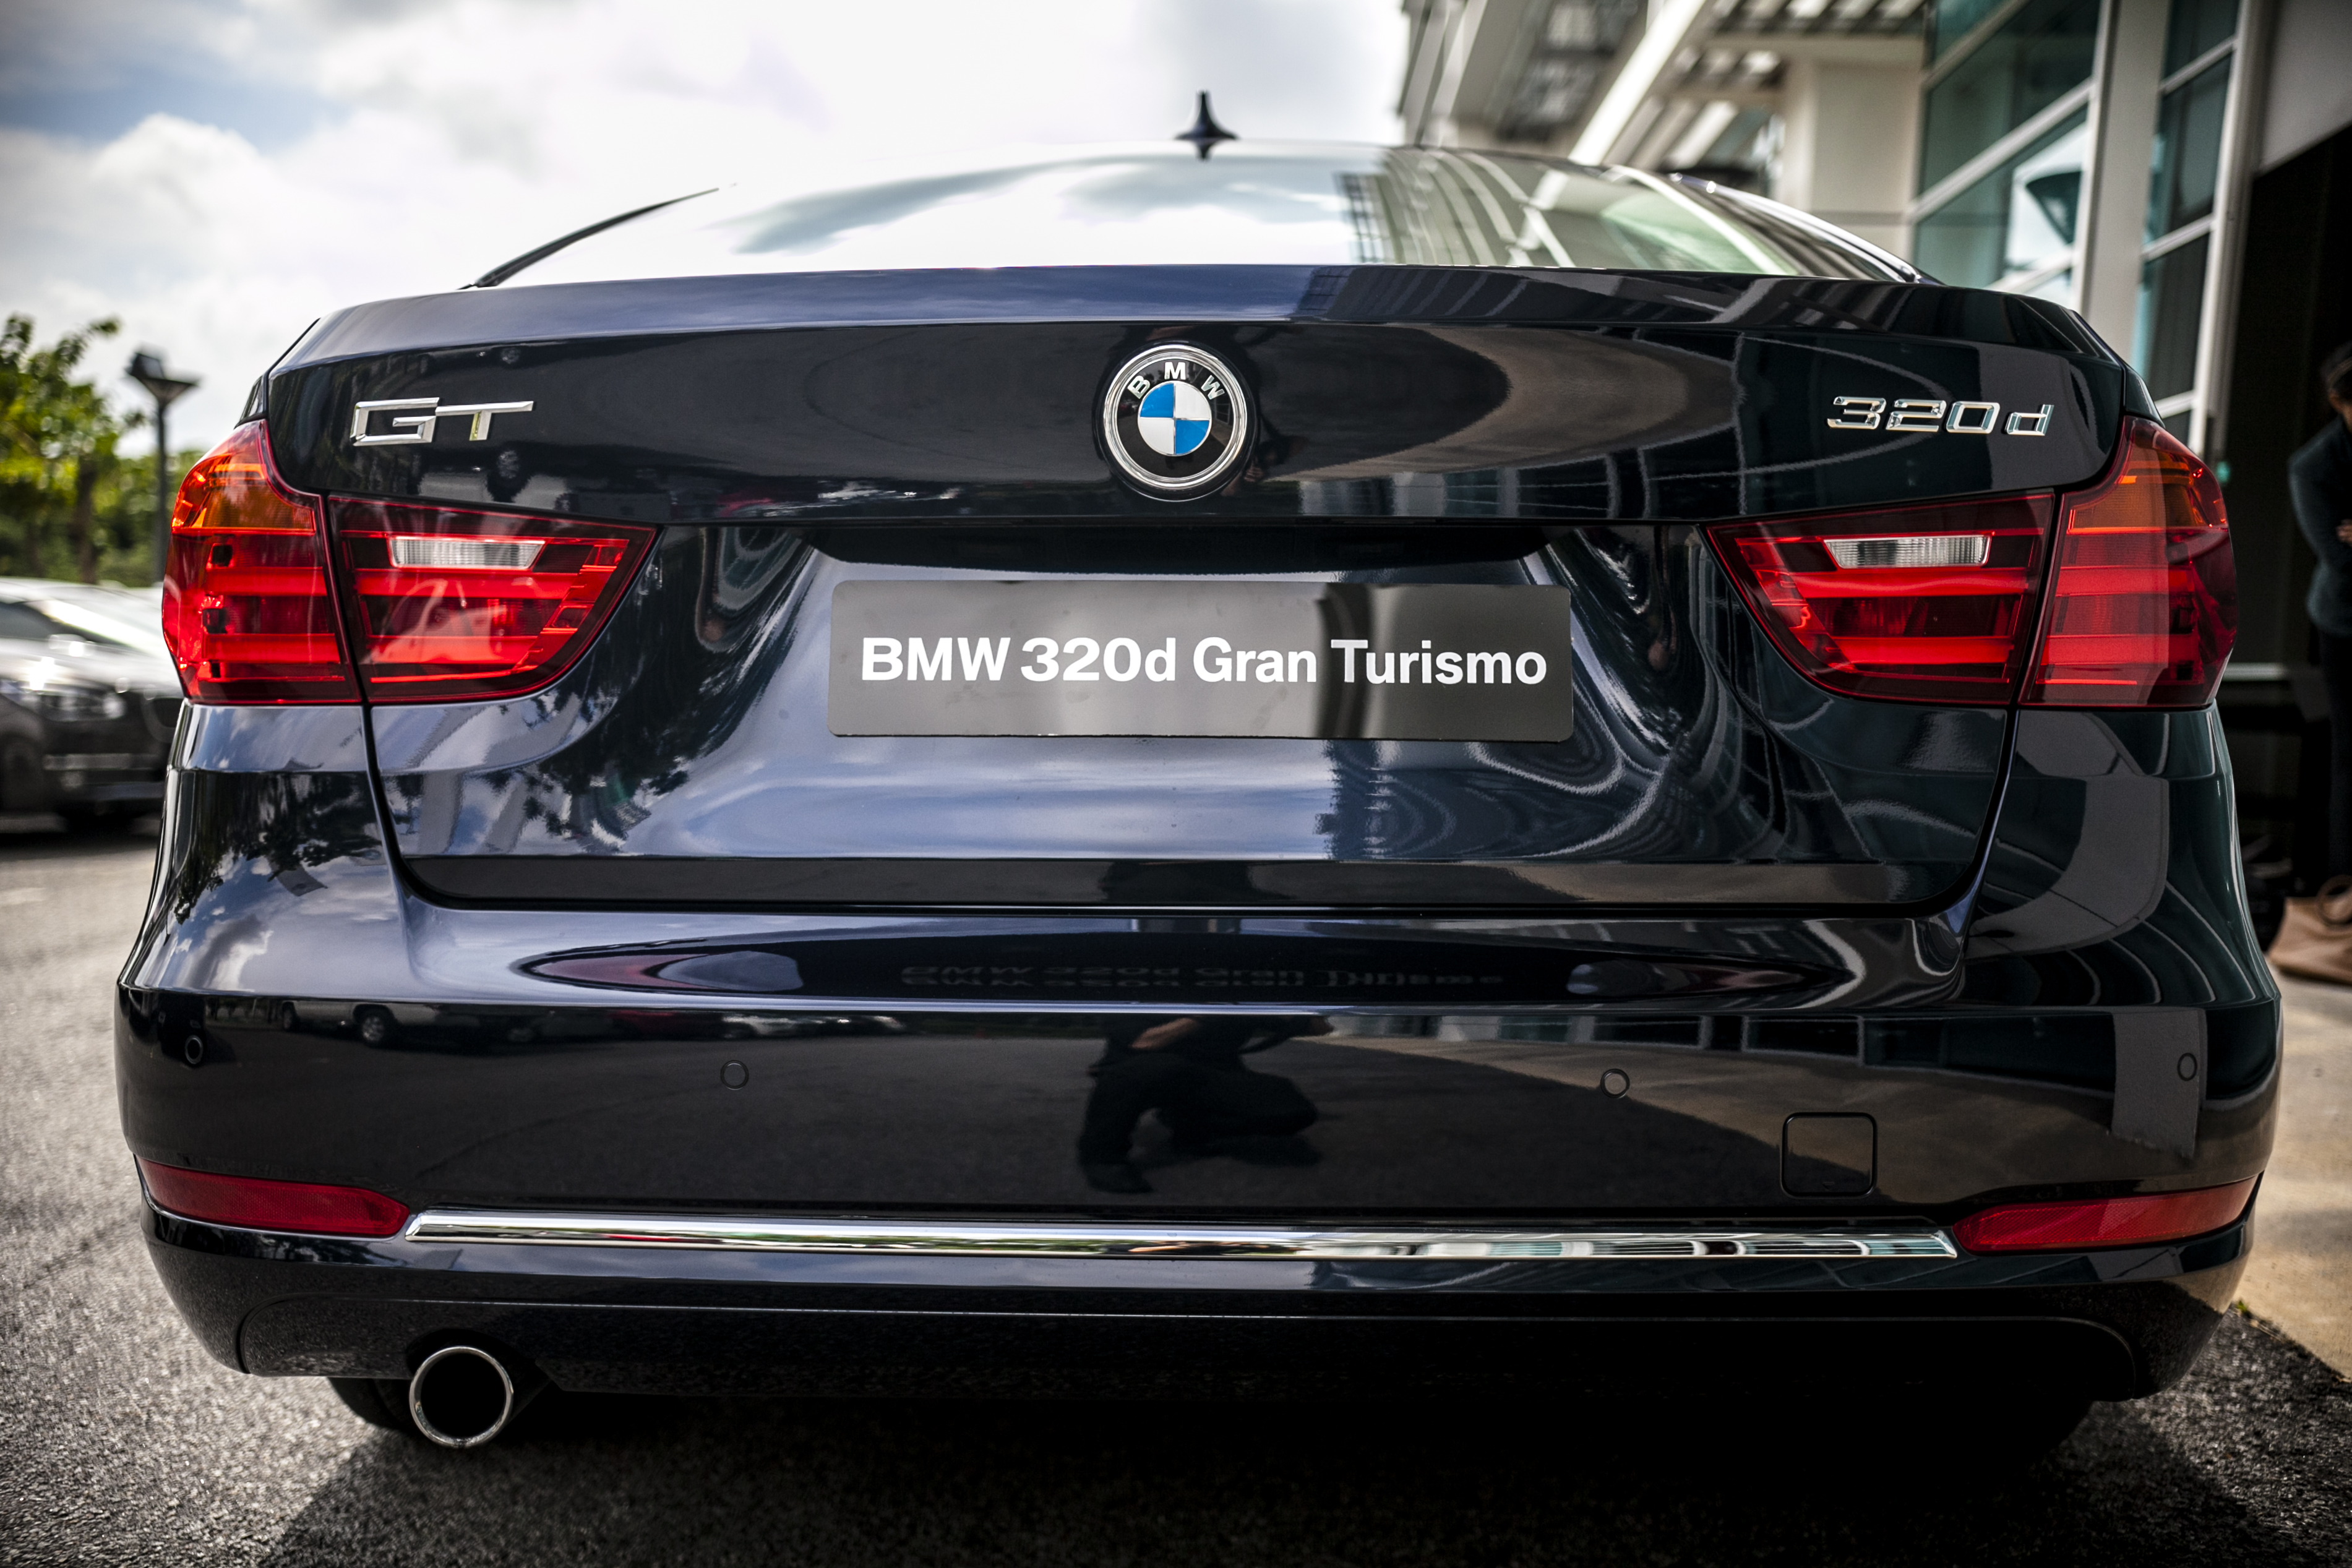 bmw 3 series gran turismo ckd now available 328i gt sport rm330k 320d gt luxury rm300k image. Black Bedroom Furniture Sets. Home Design Ideas